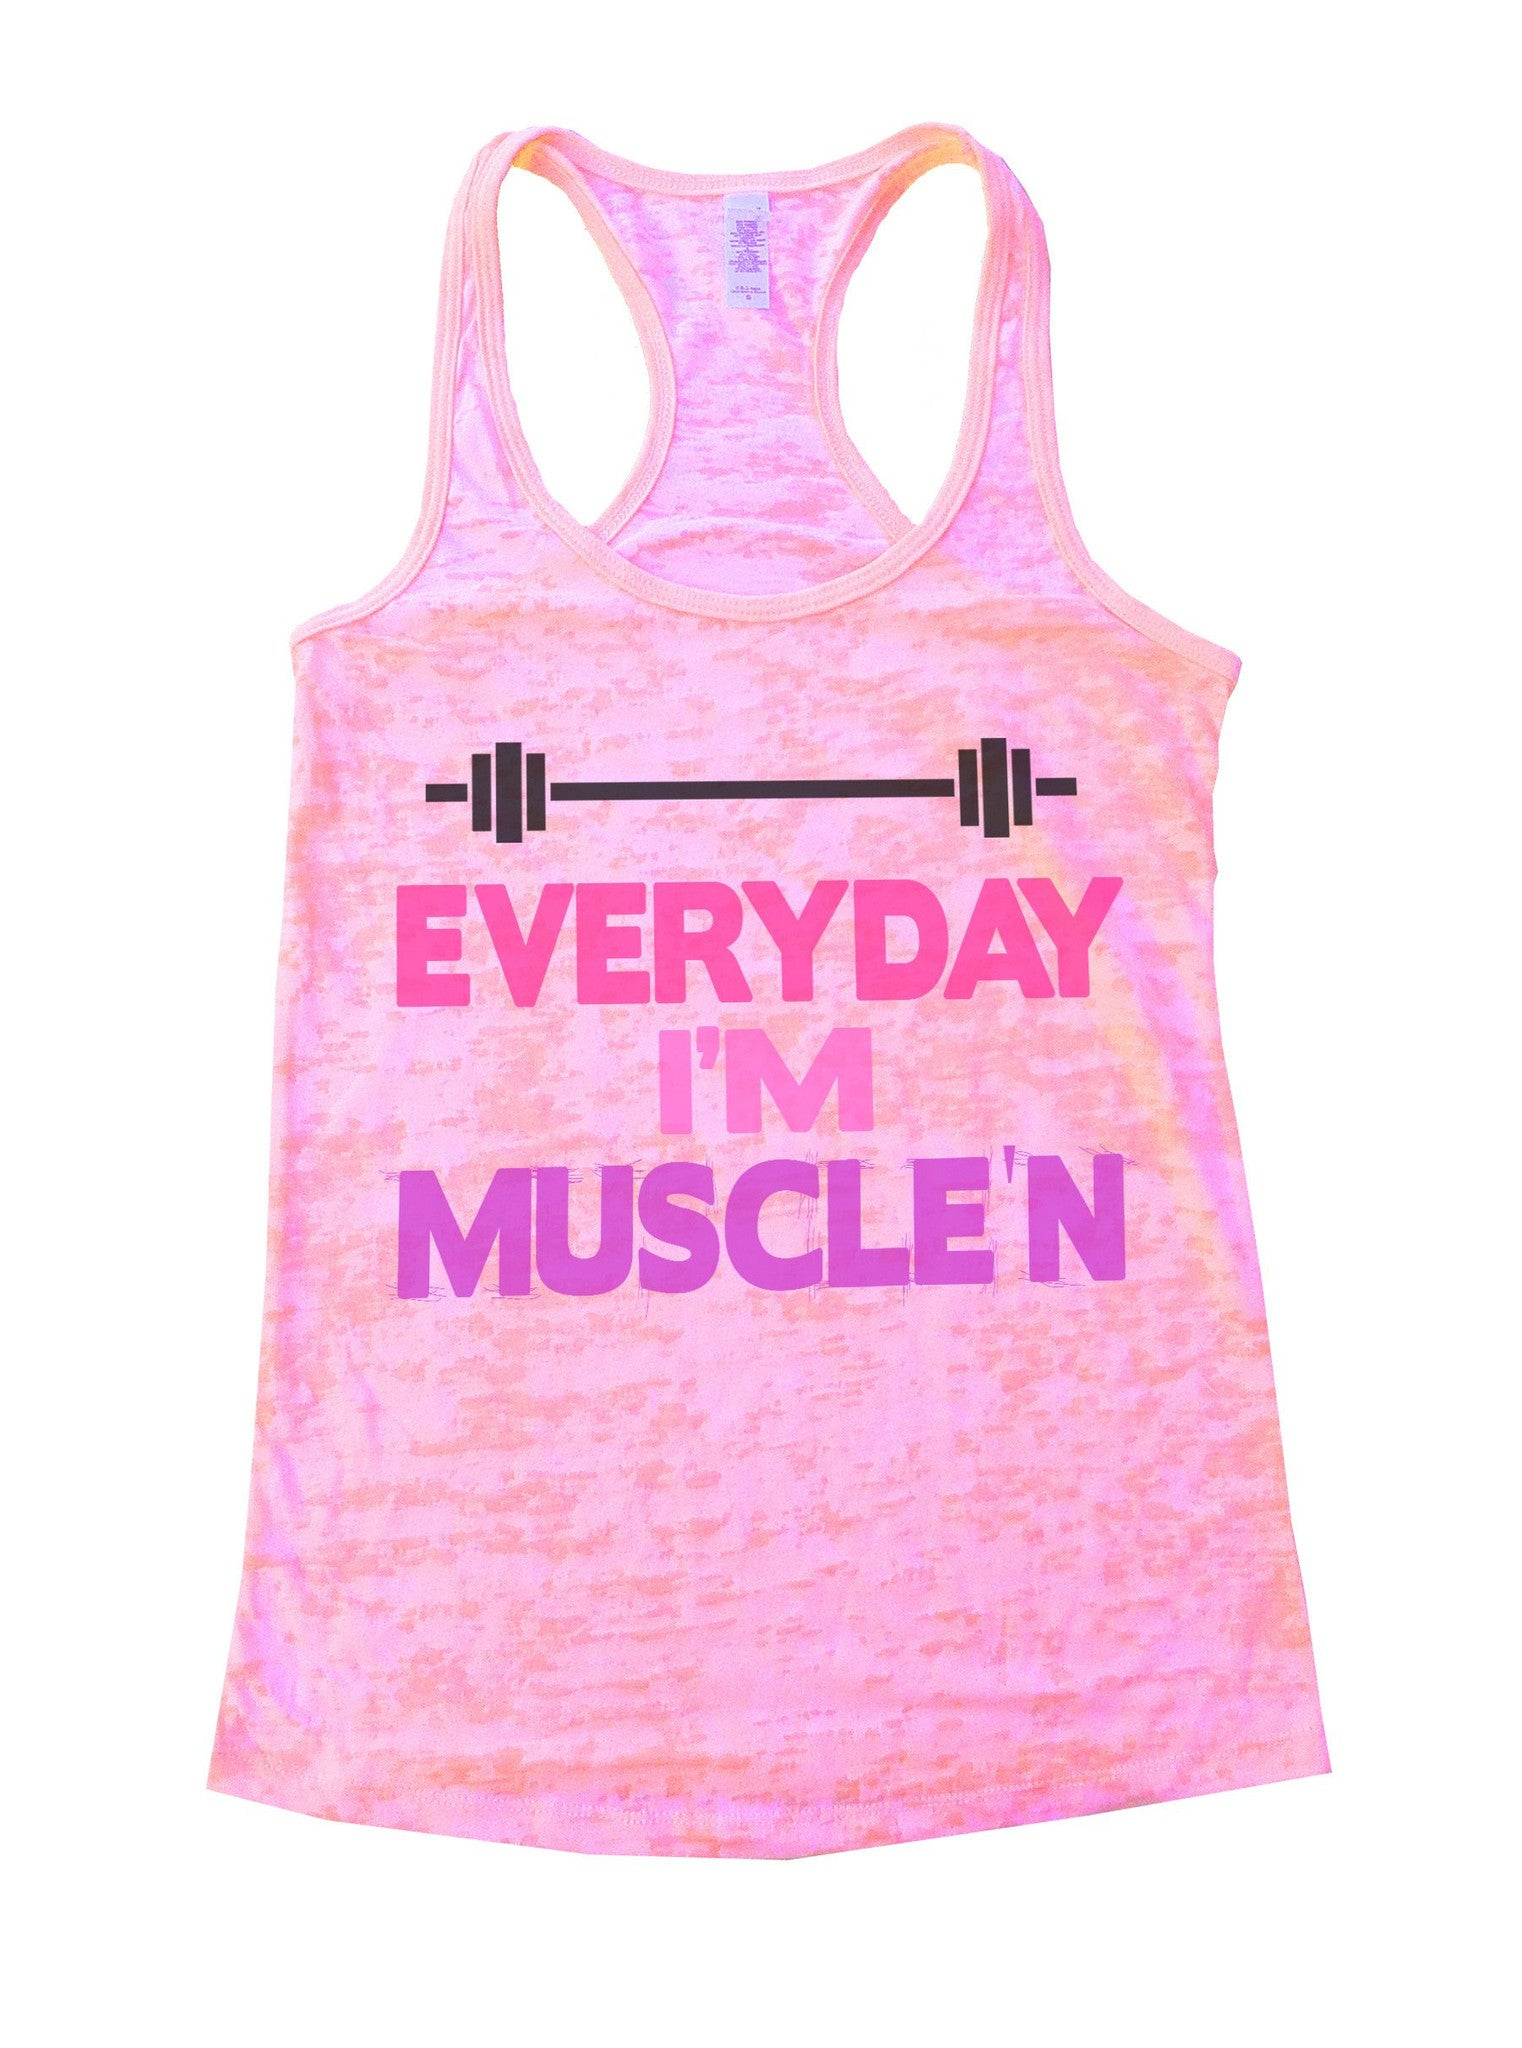 Everyday I'm Muscle'n Burnout Tank Top By BurnoutTankTops.com - 636 - Funny Shirts Tank Tops Burnouts and Triblends  - 2